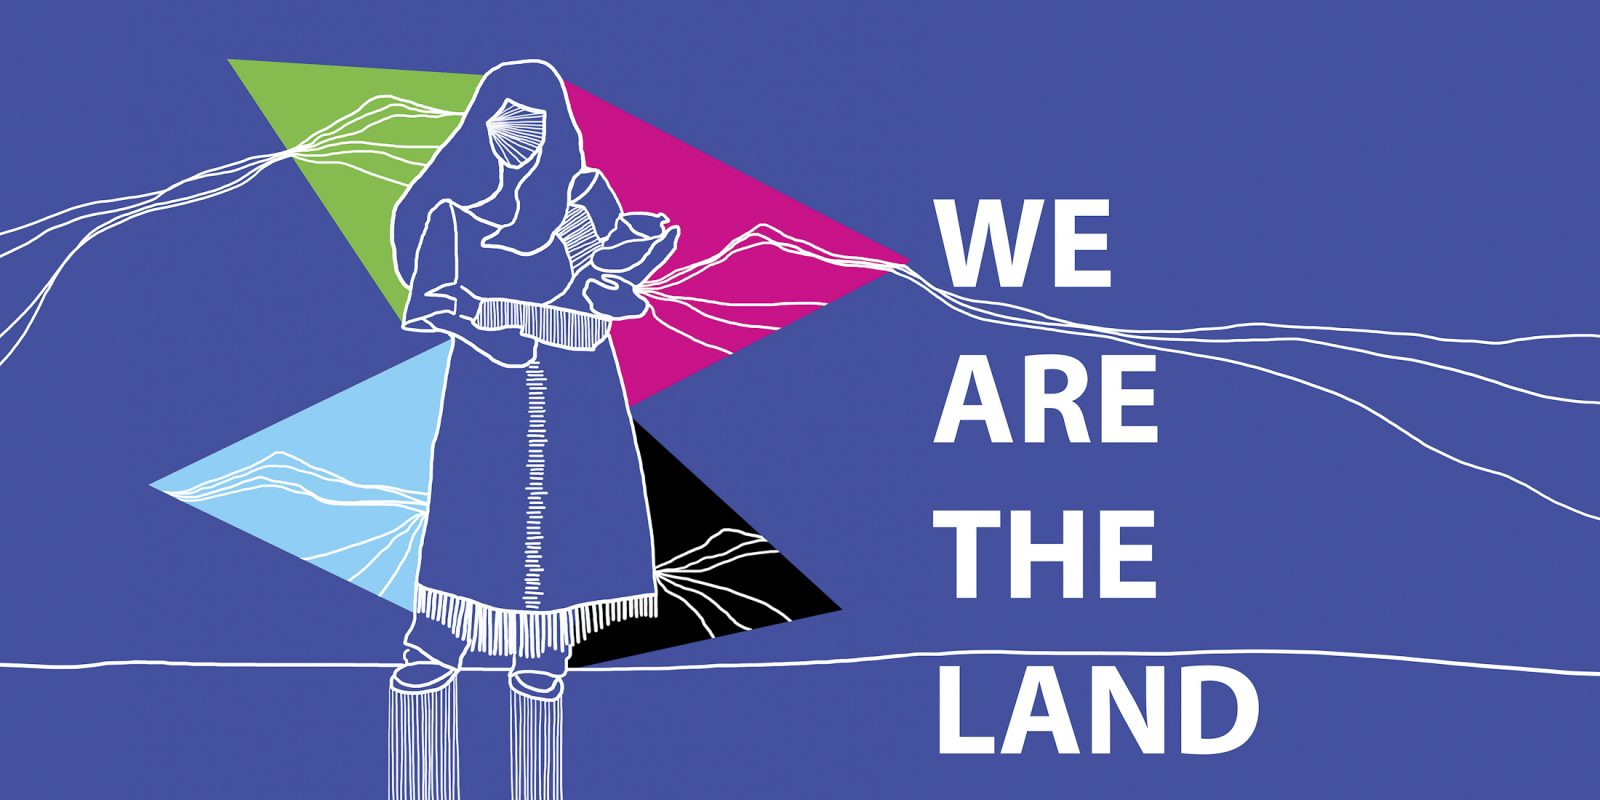 We are the Land